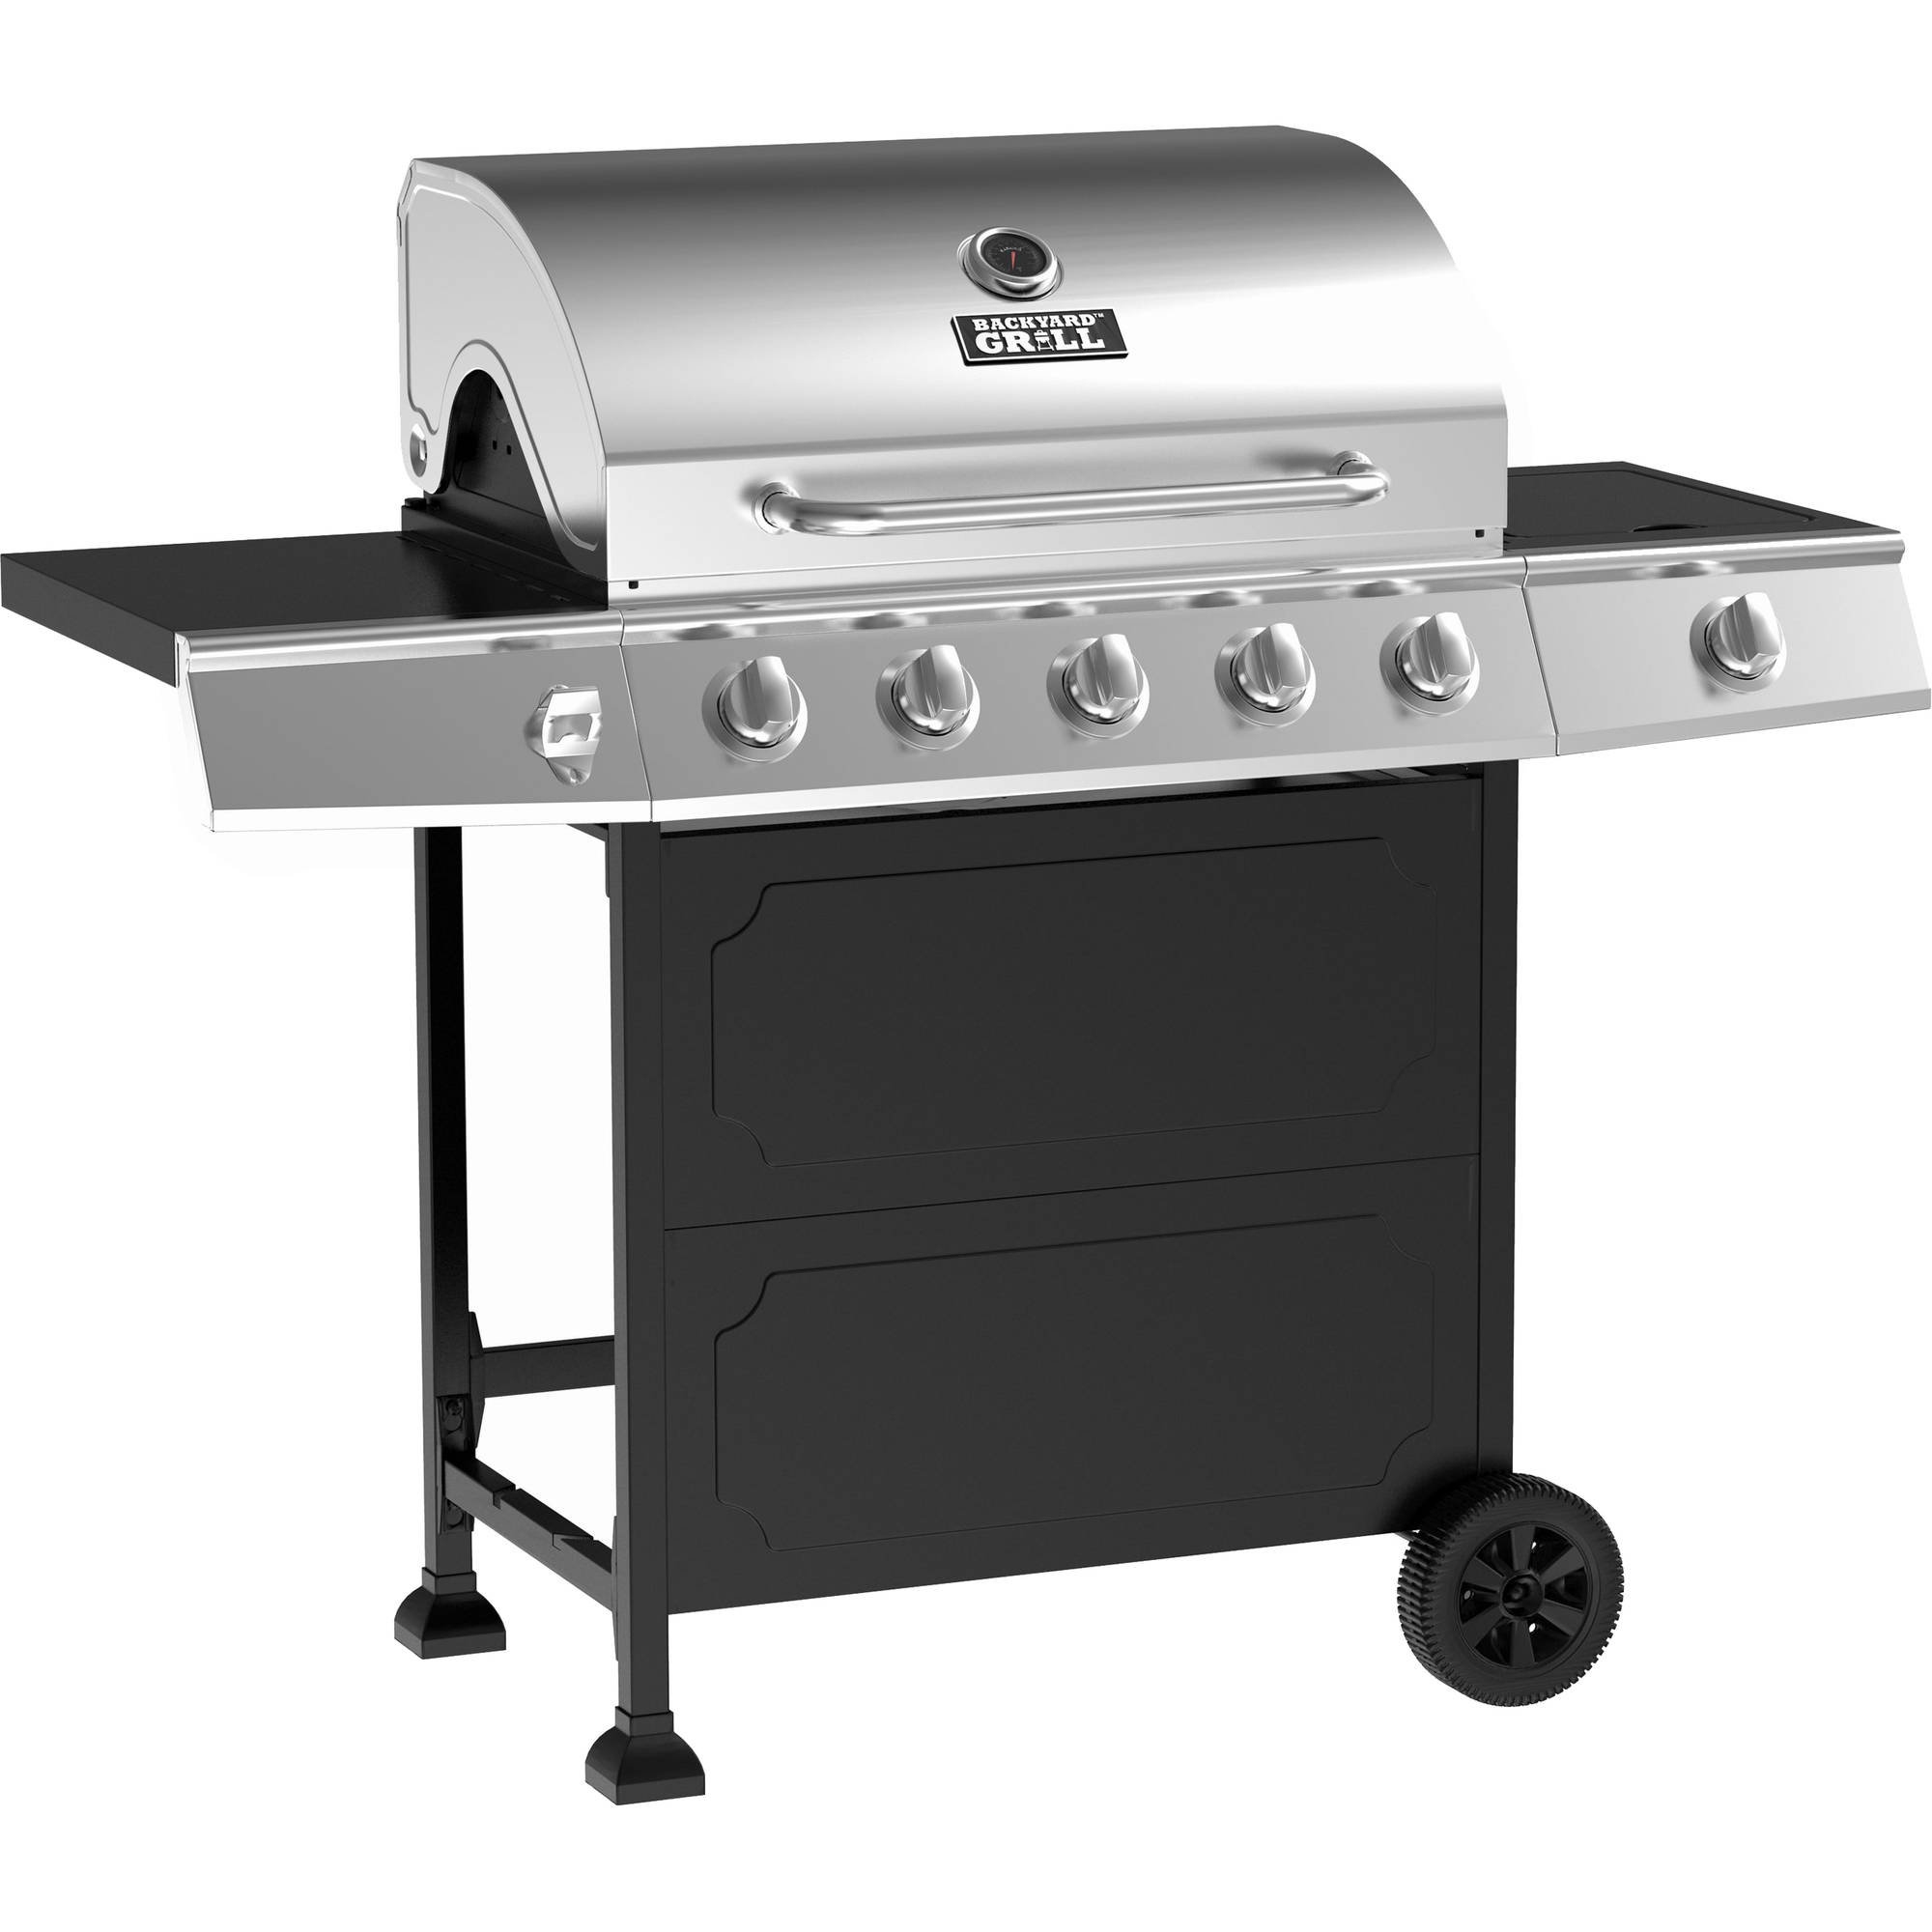 Gentil Backyard Grill 5 Burner Gas Grill, Black   Walmart.com